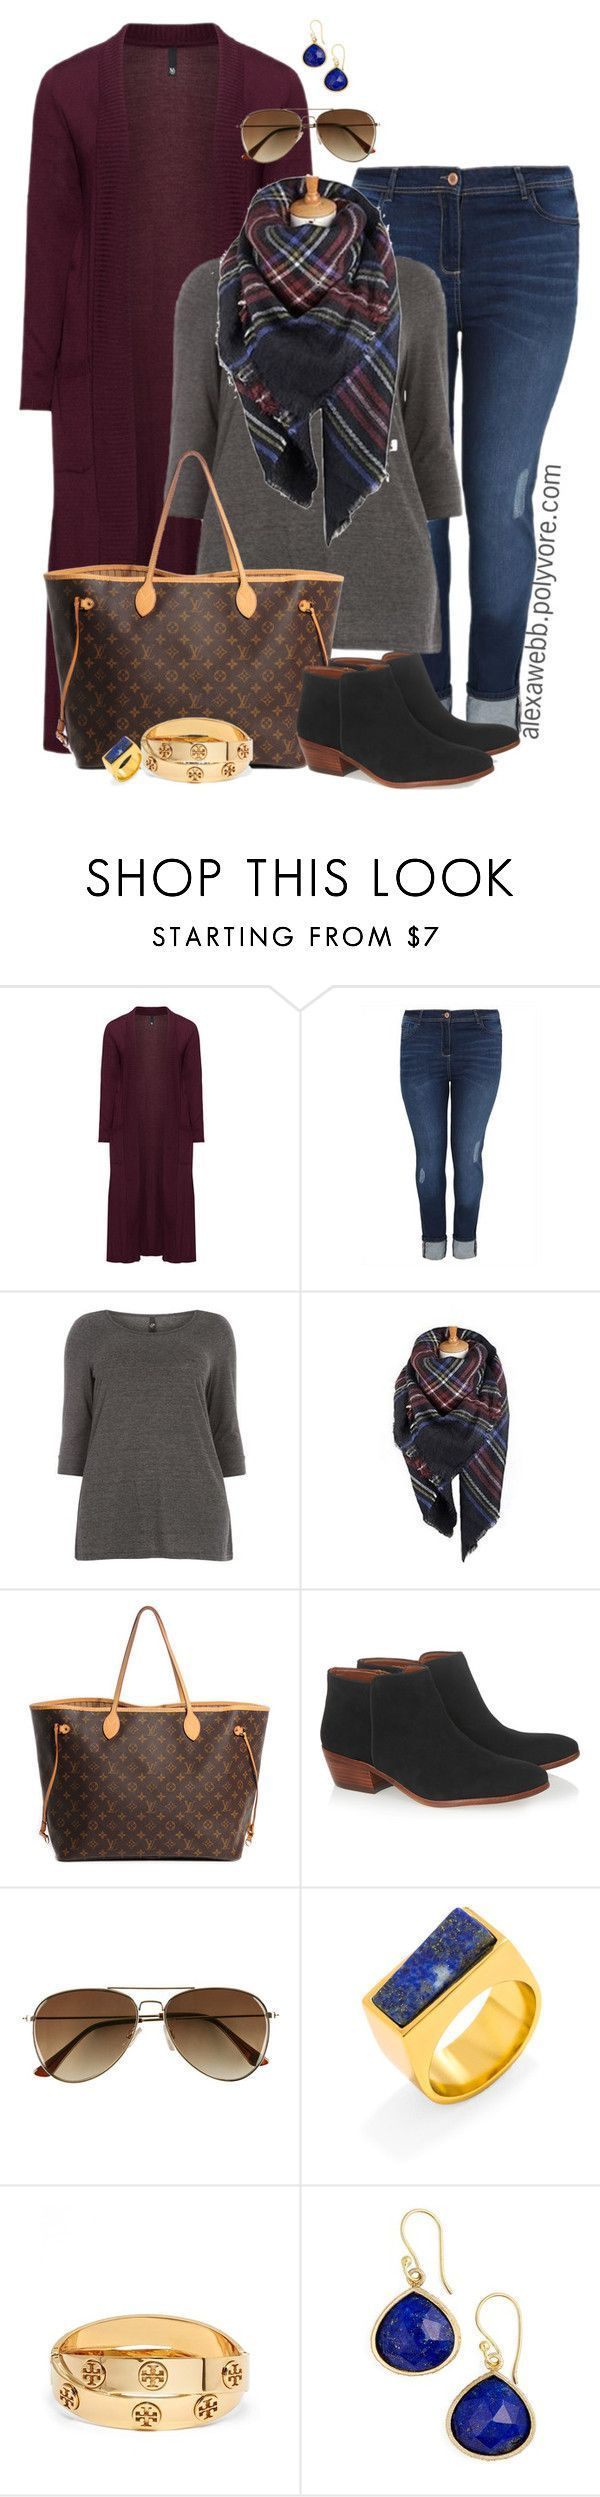 """Plus Size - Fall Casual Outfit"" by alexawebb ❤️ liked on Polyvore featuring Manon Baptiste, Louis Vuitton, Sam Edelman, H&M, BaubleBar, Tory Burch, SonyaRené️️e, outfit, plussize and plussizefashion"